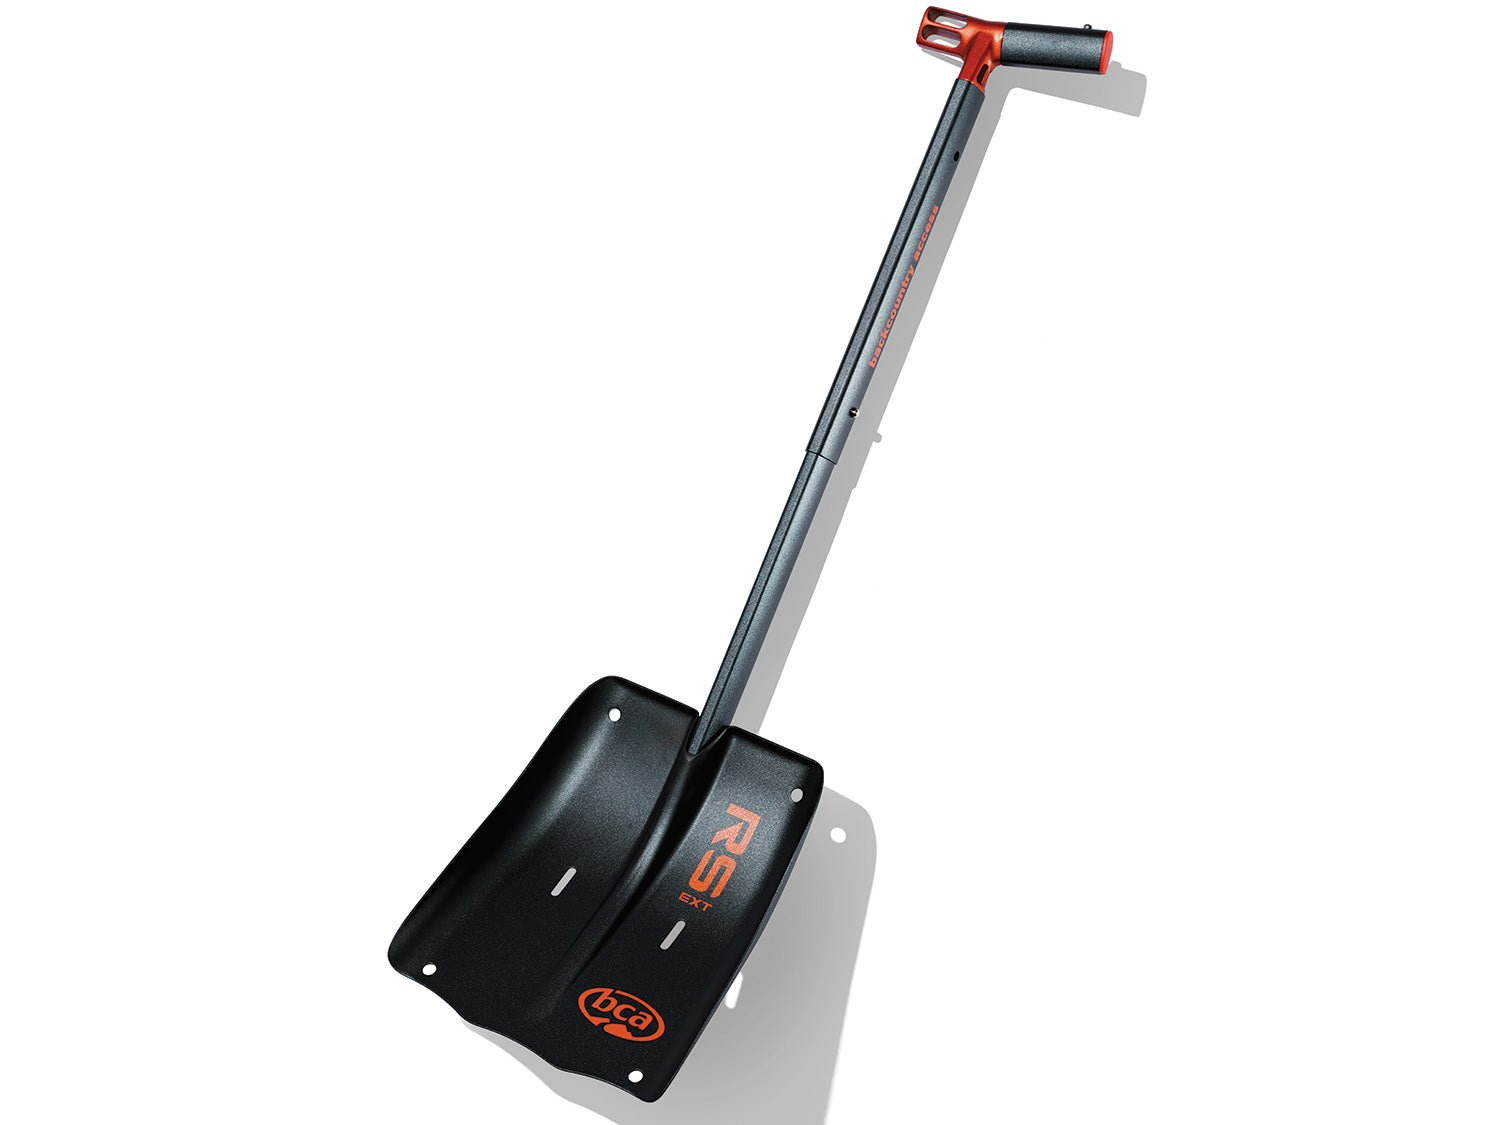 Backcountry Access RS EXT avalanche shovel